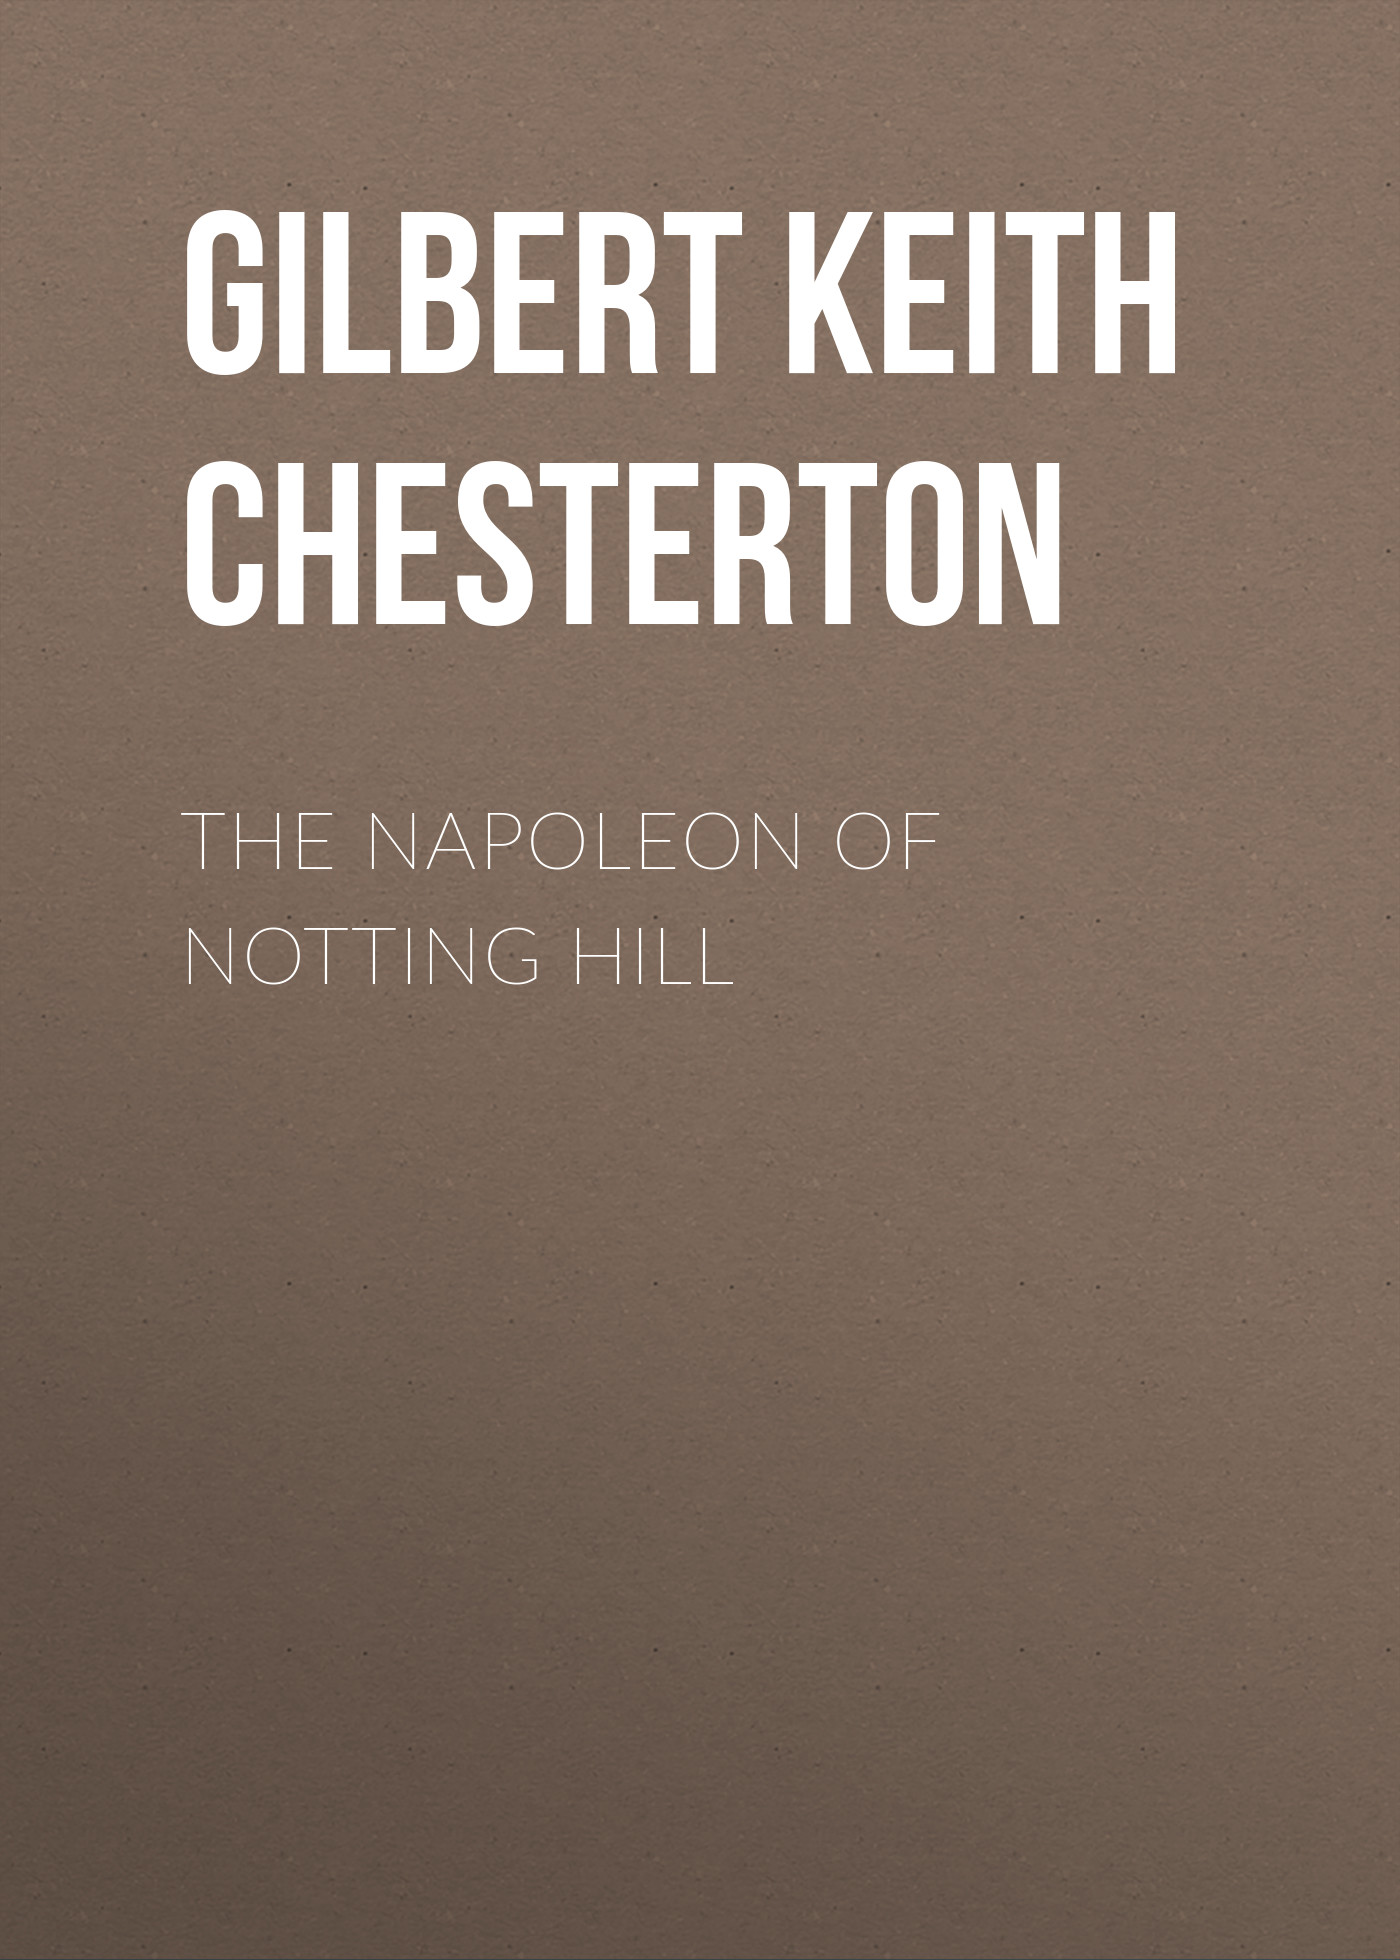 Gilbert Keith Chesterton The Napoleon of Notting Hill gilbert keith chesterton a miscellany of men